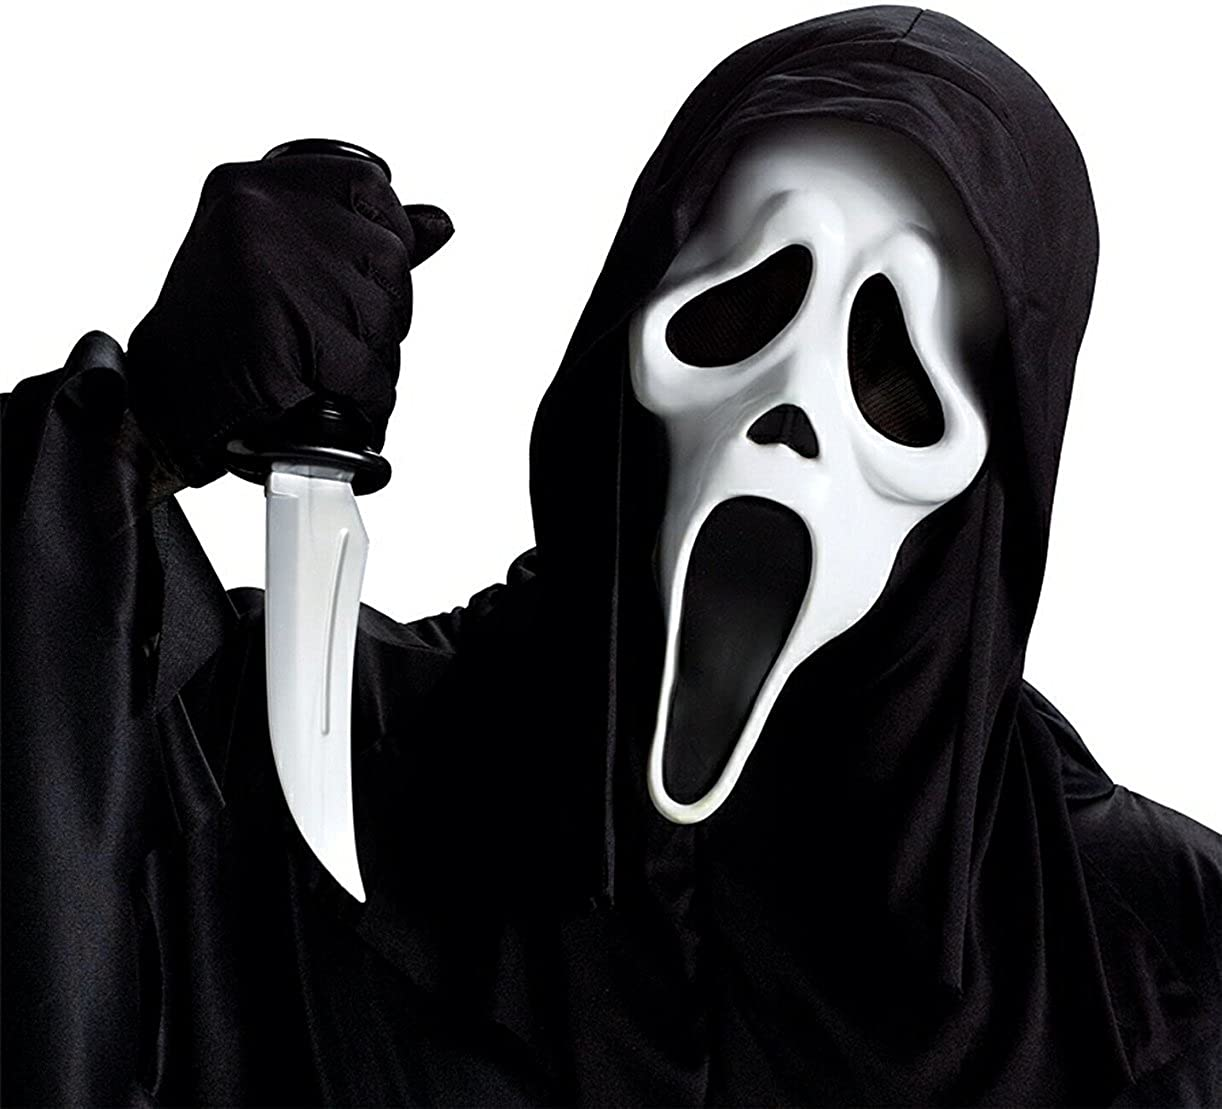 Amazon.com: GHOST FACE MASK W/KNIFE: Toys & Games